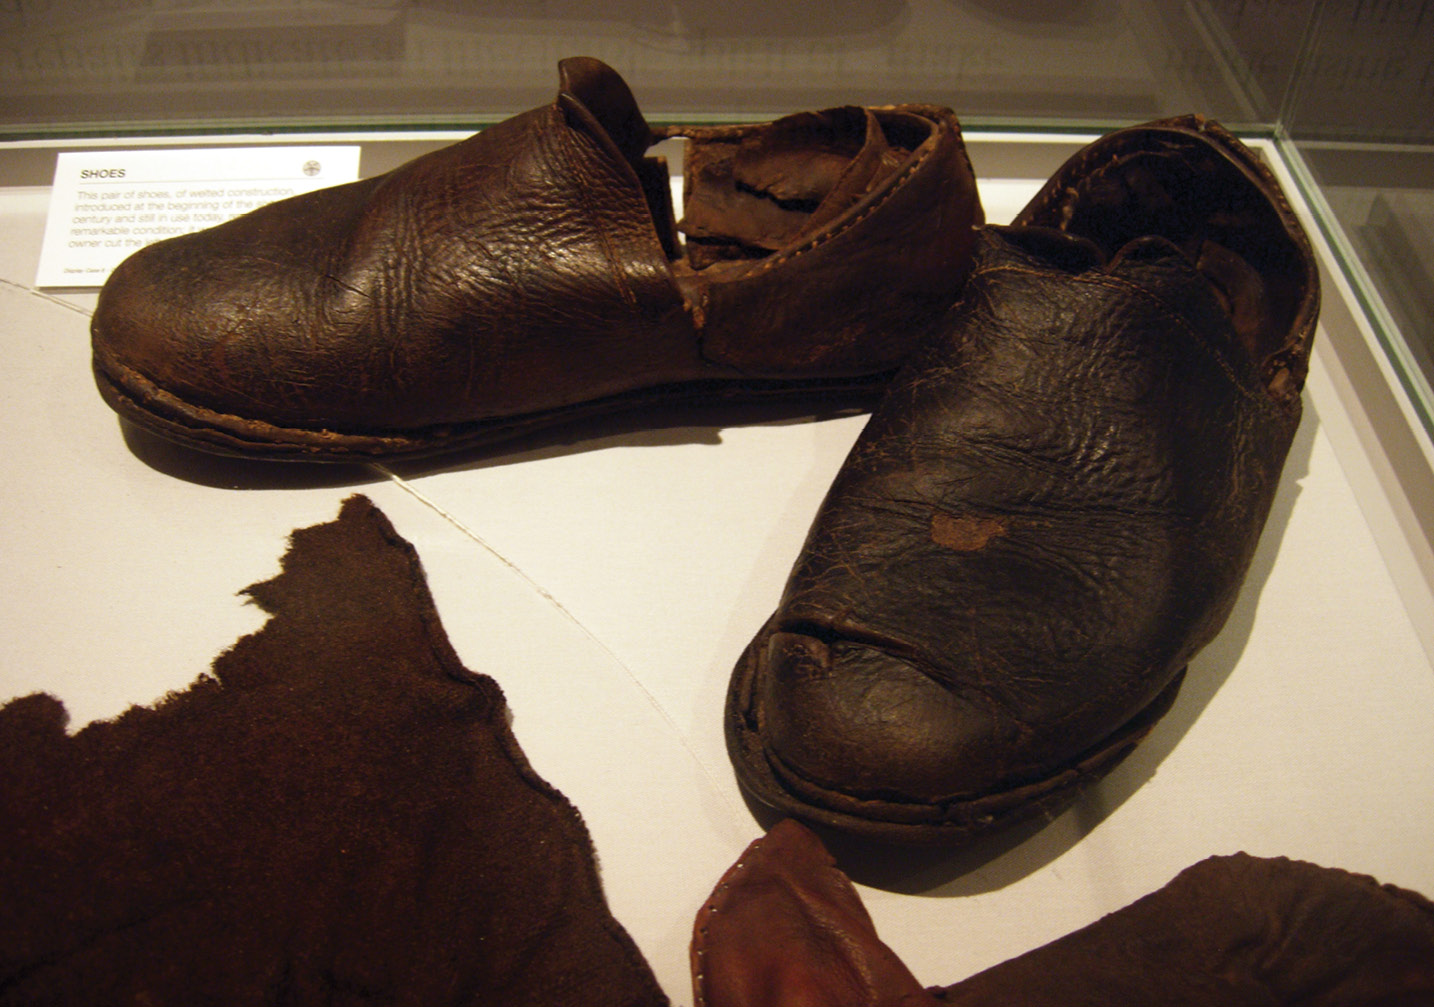 right Most of the leather shoes found in the wreck were slip-on types that were most useful for 'deckmen' and soldiers rather than the agile 'topmen' who scaled the rigging to set the sails.